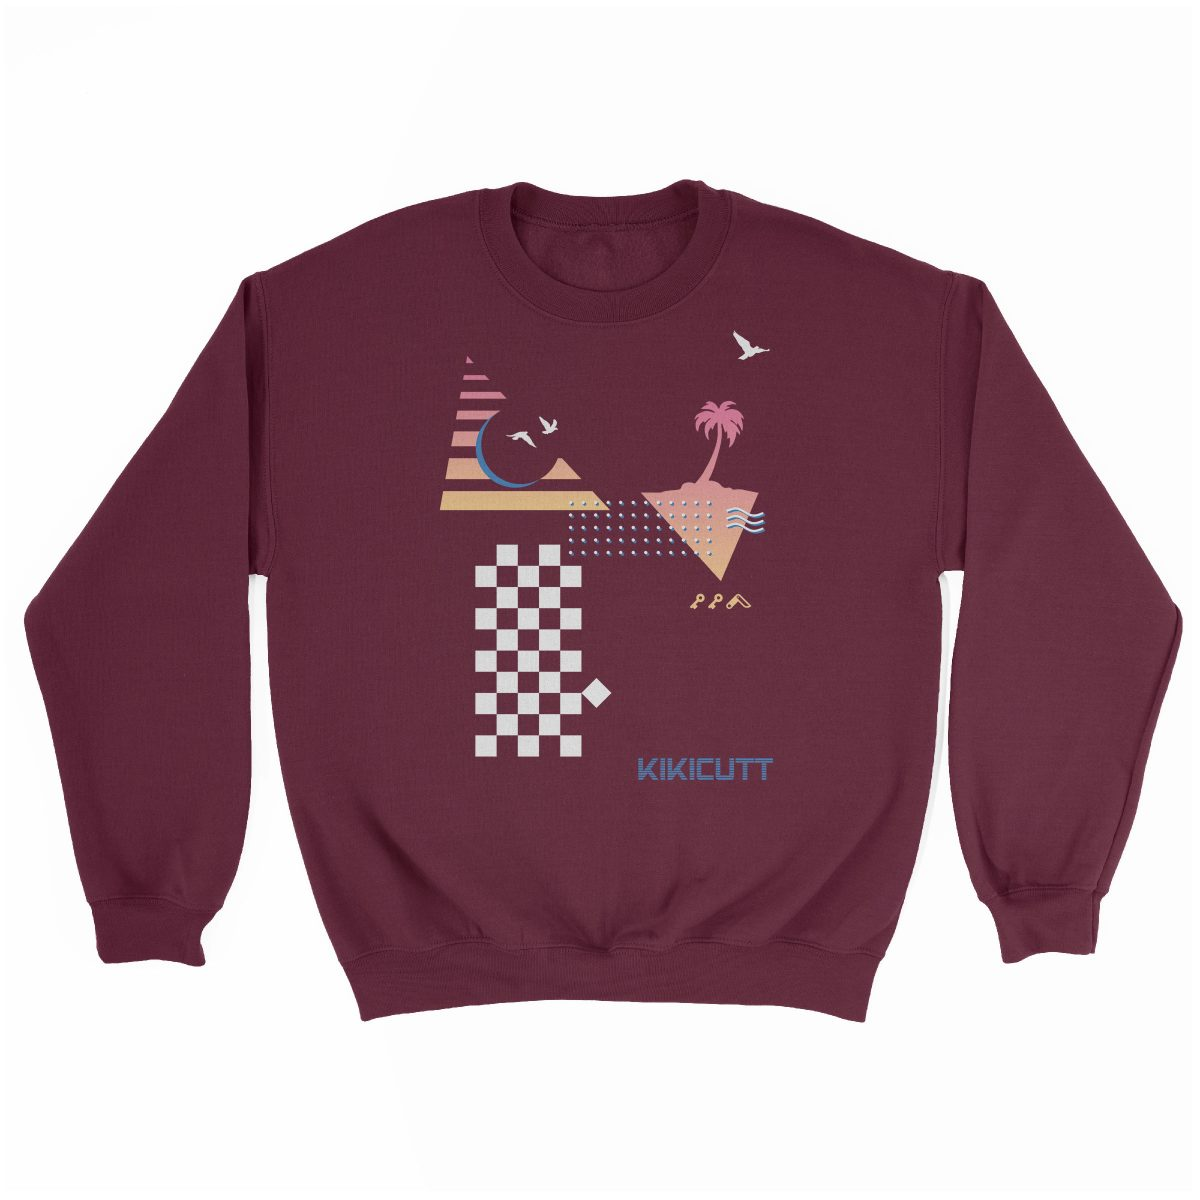 CHECKERED PAST retro throwback 80s style design graphic sweatshirt in maroon